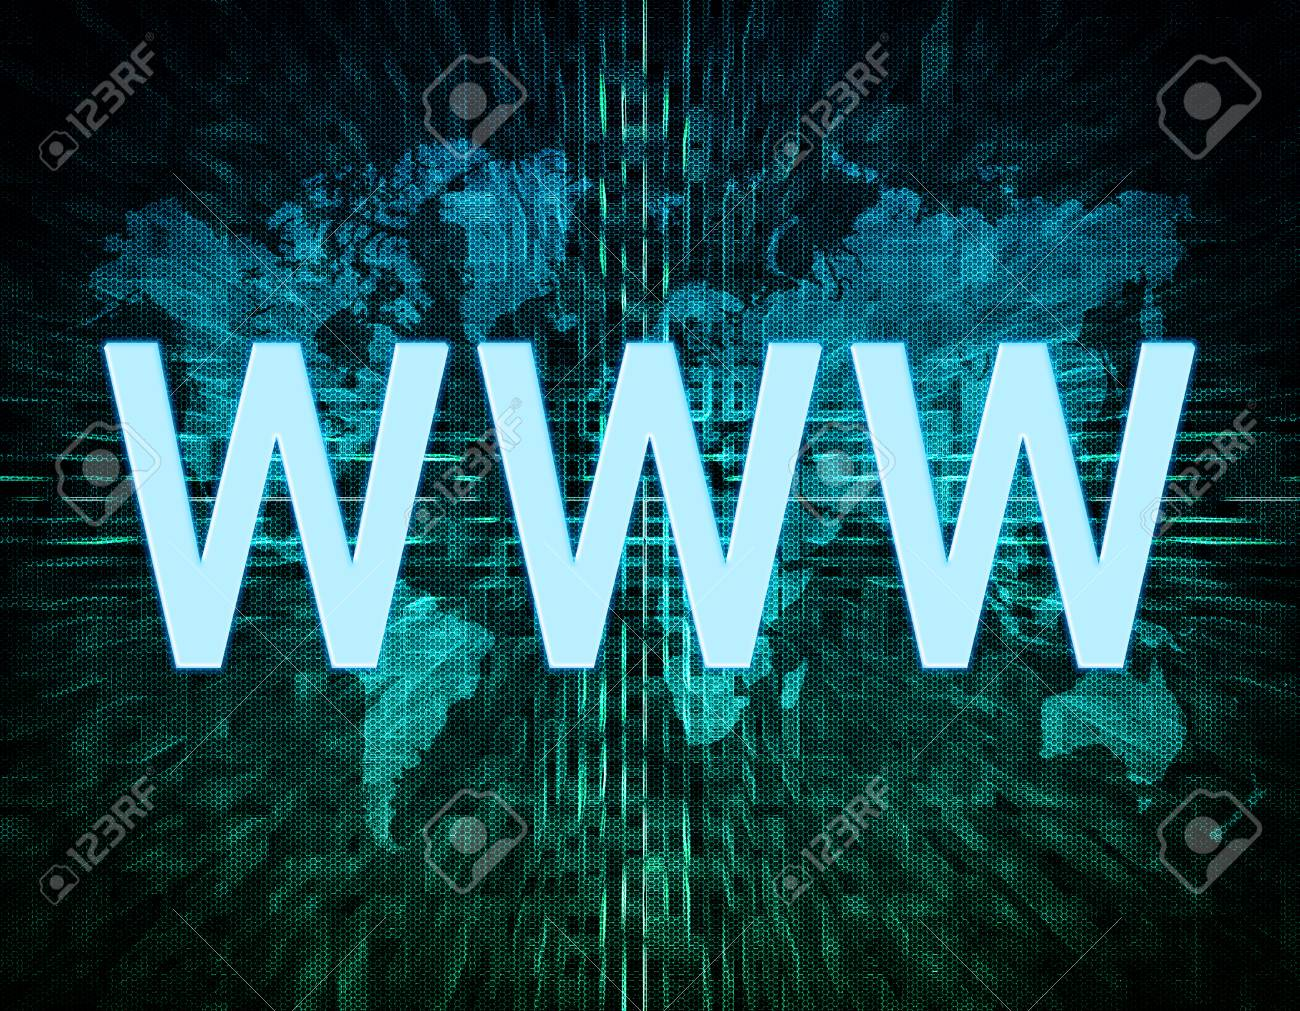 Www world wide web text concept on green digital world map stock stock photo www world wide web text concept on green digital world map background gumiabroncs Images